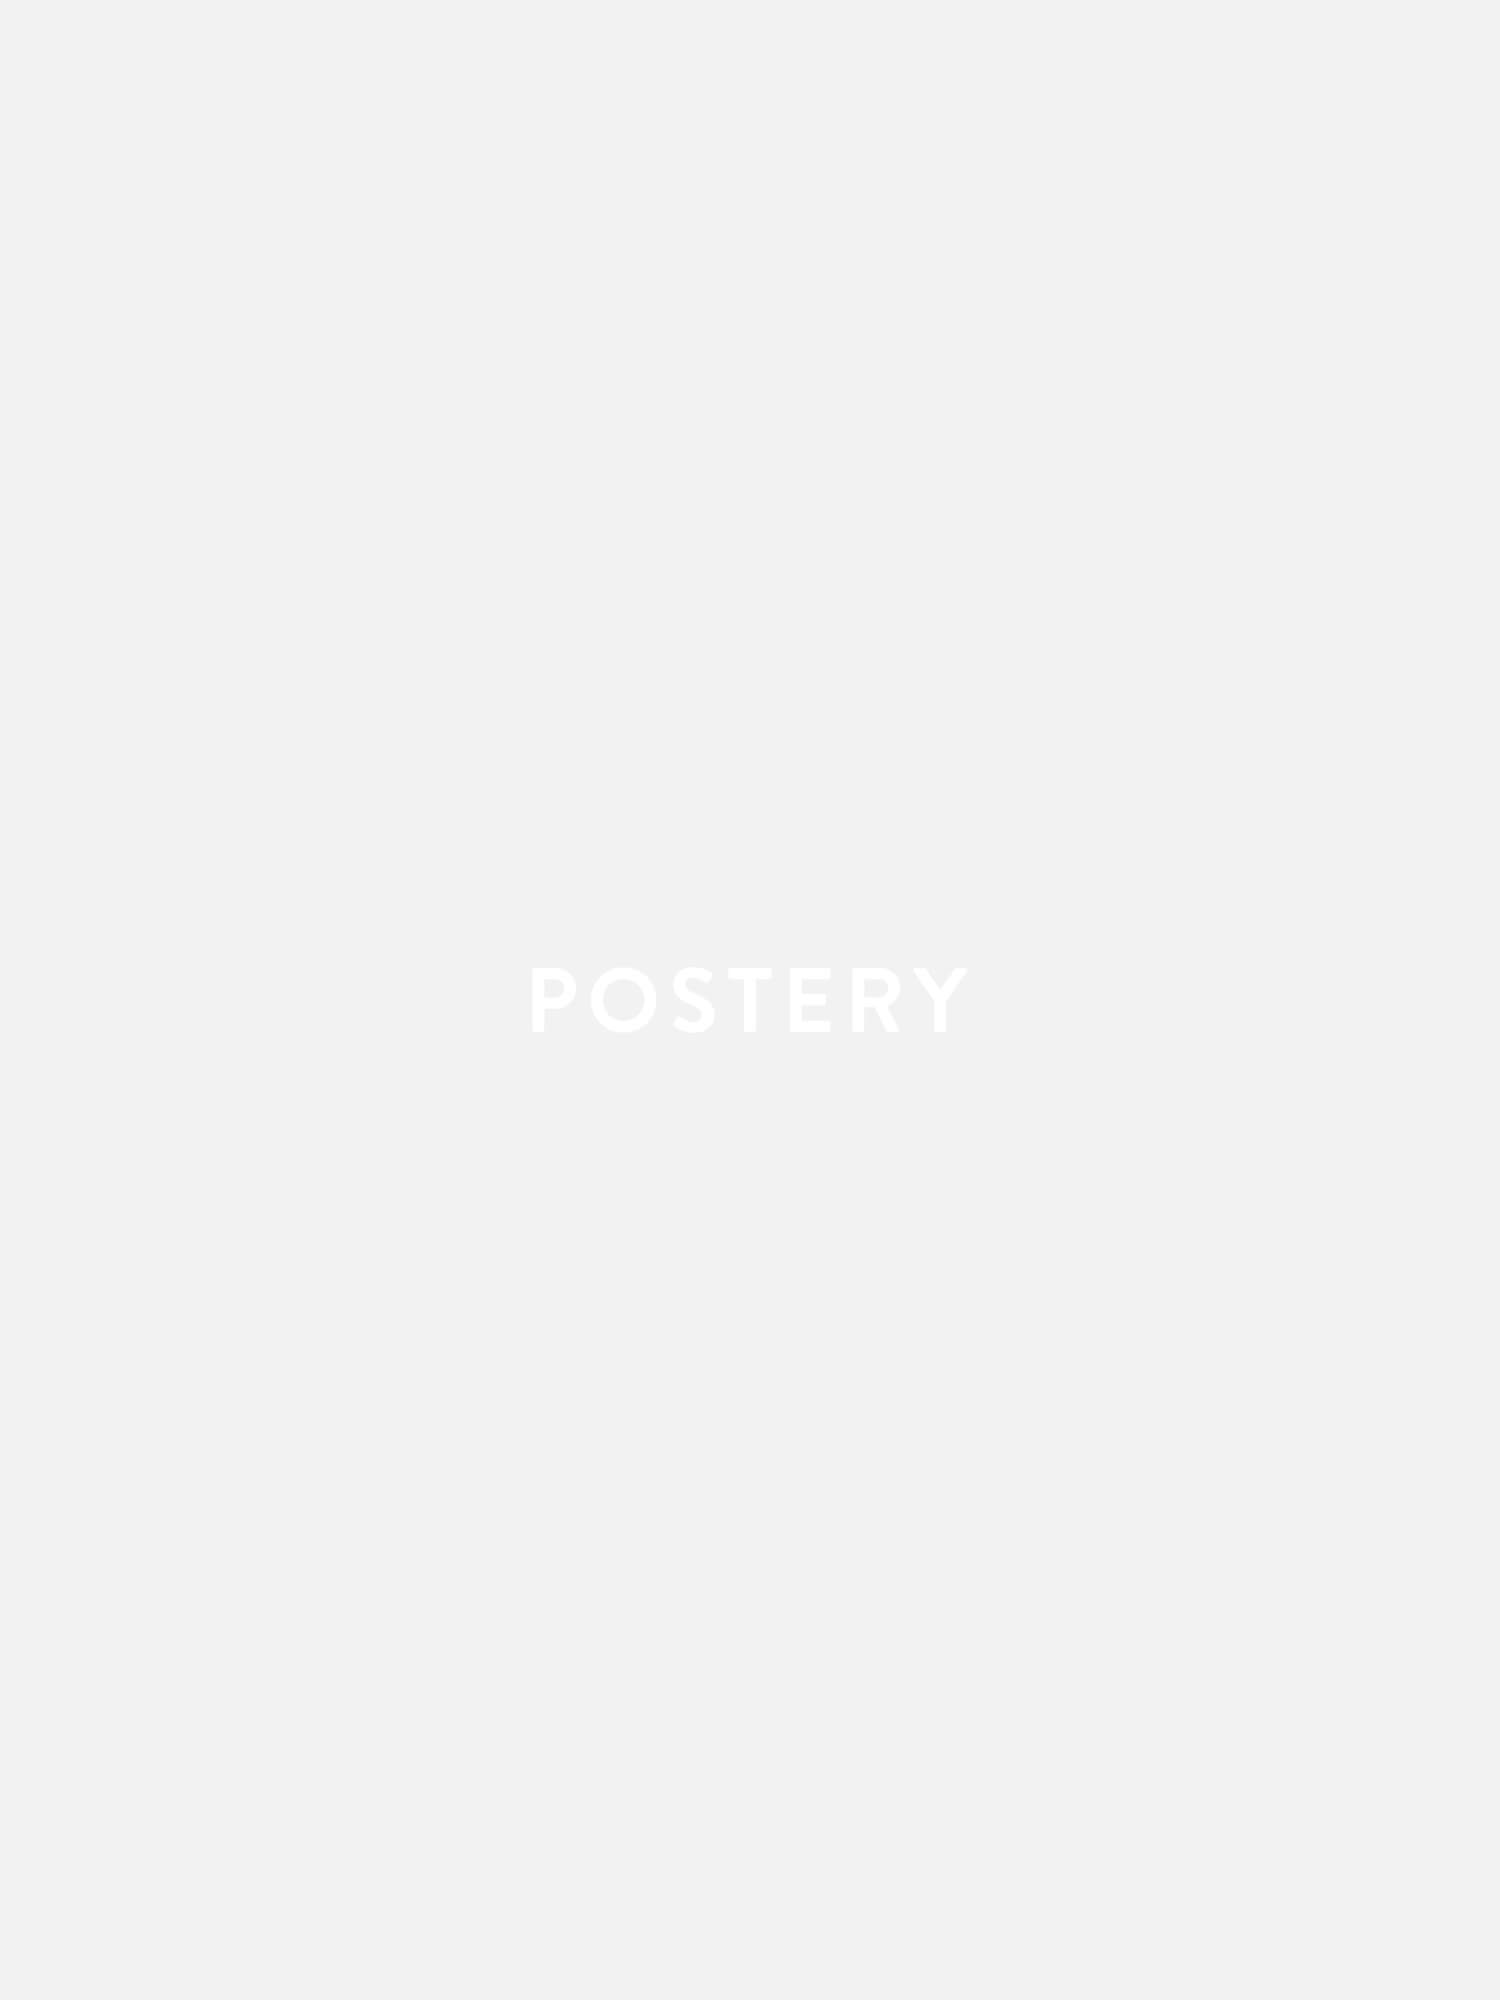 Smile Lines Poster